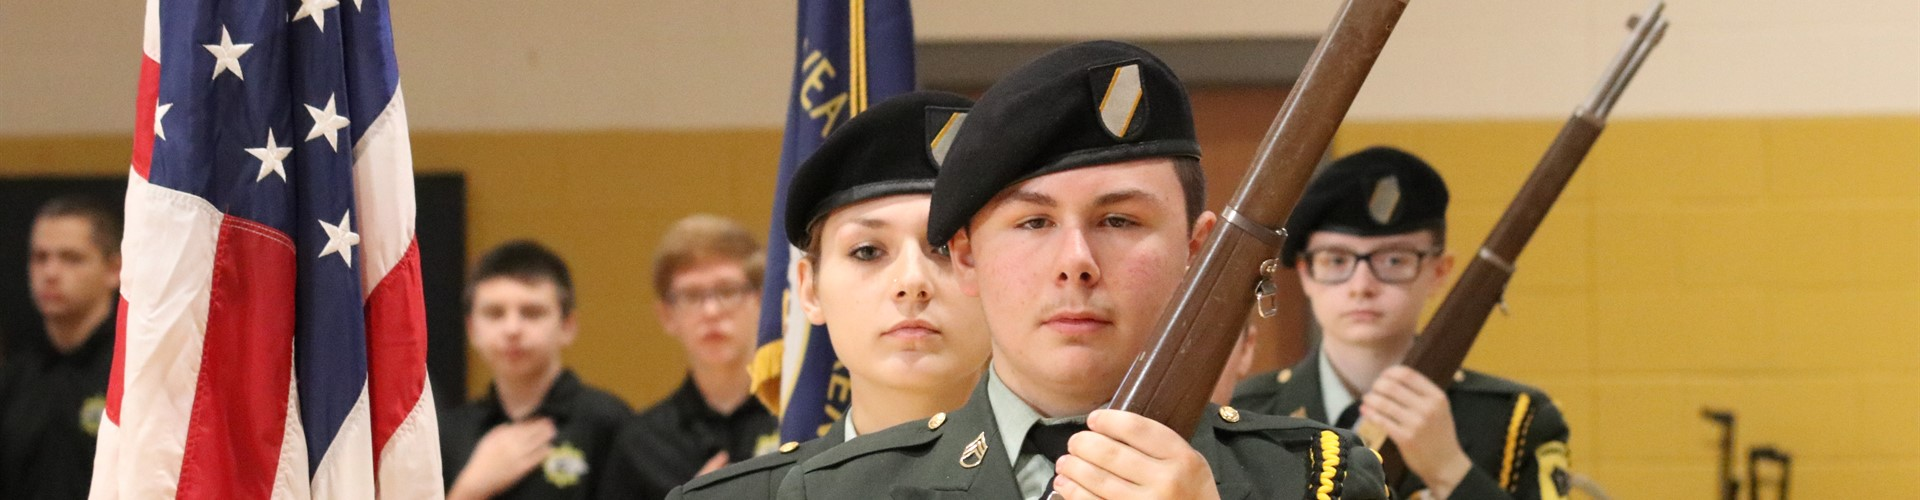 Three Honor Guard students carry ceremonial arms after posting the colors